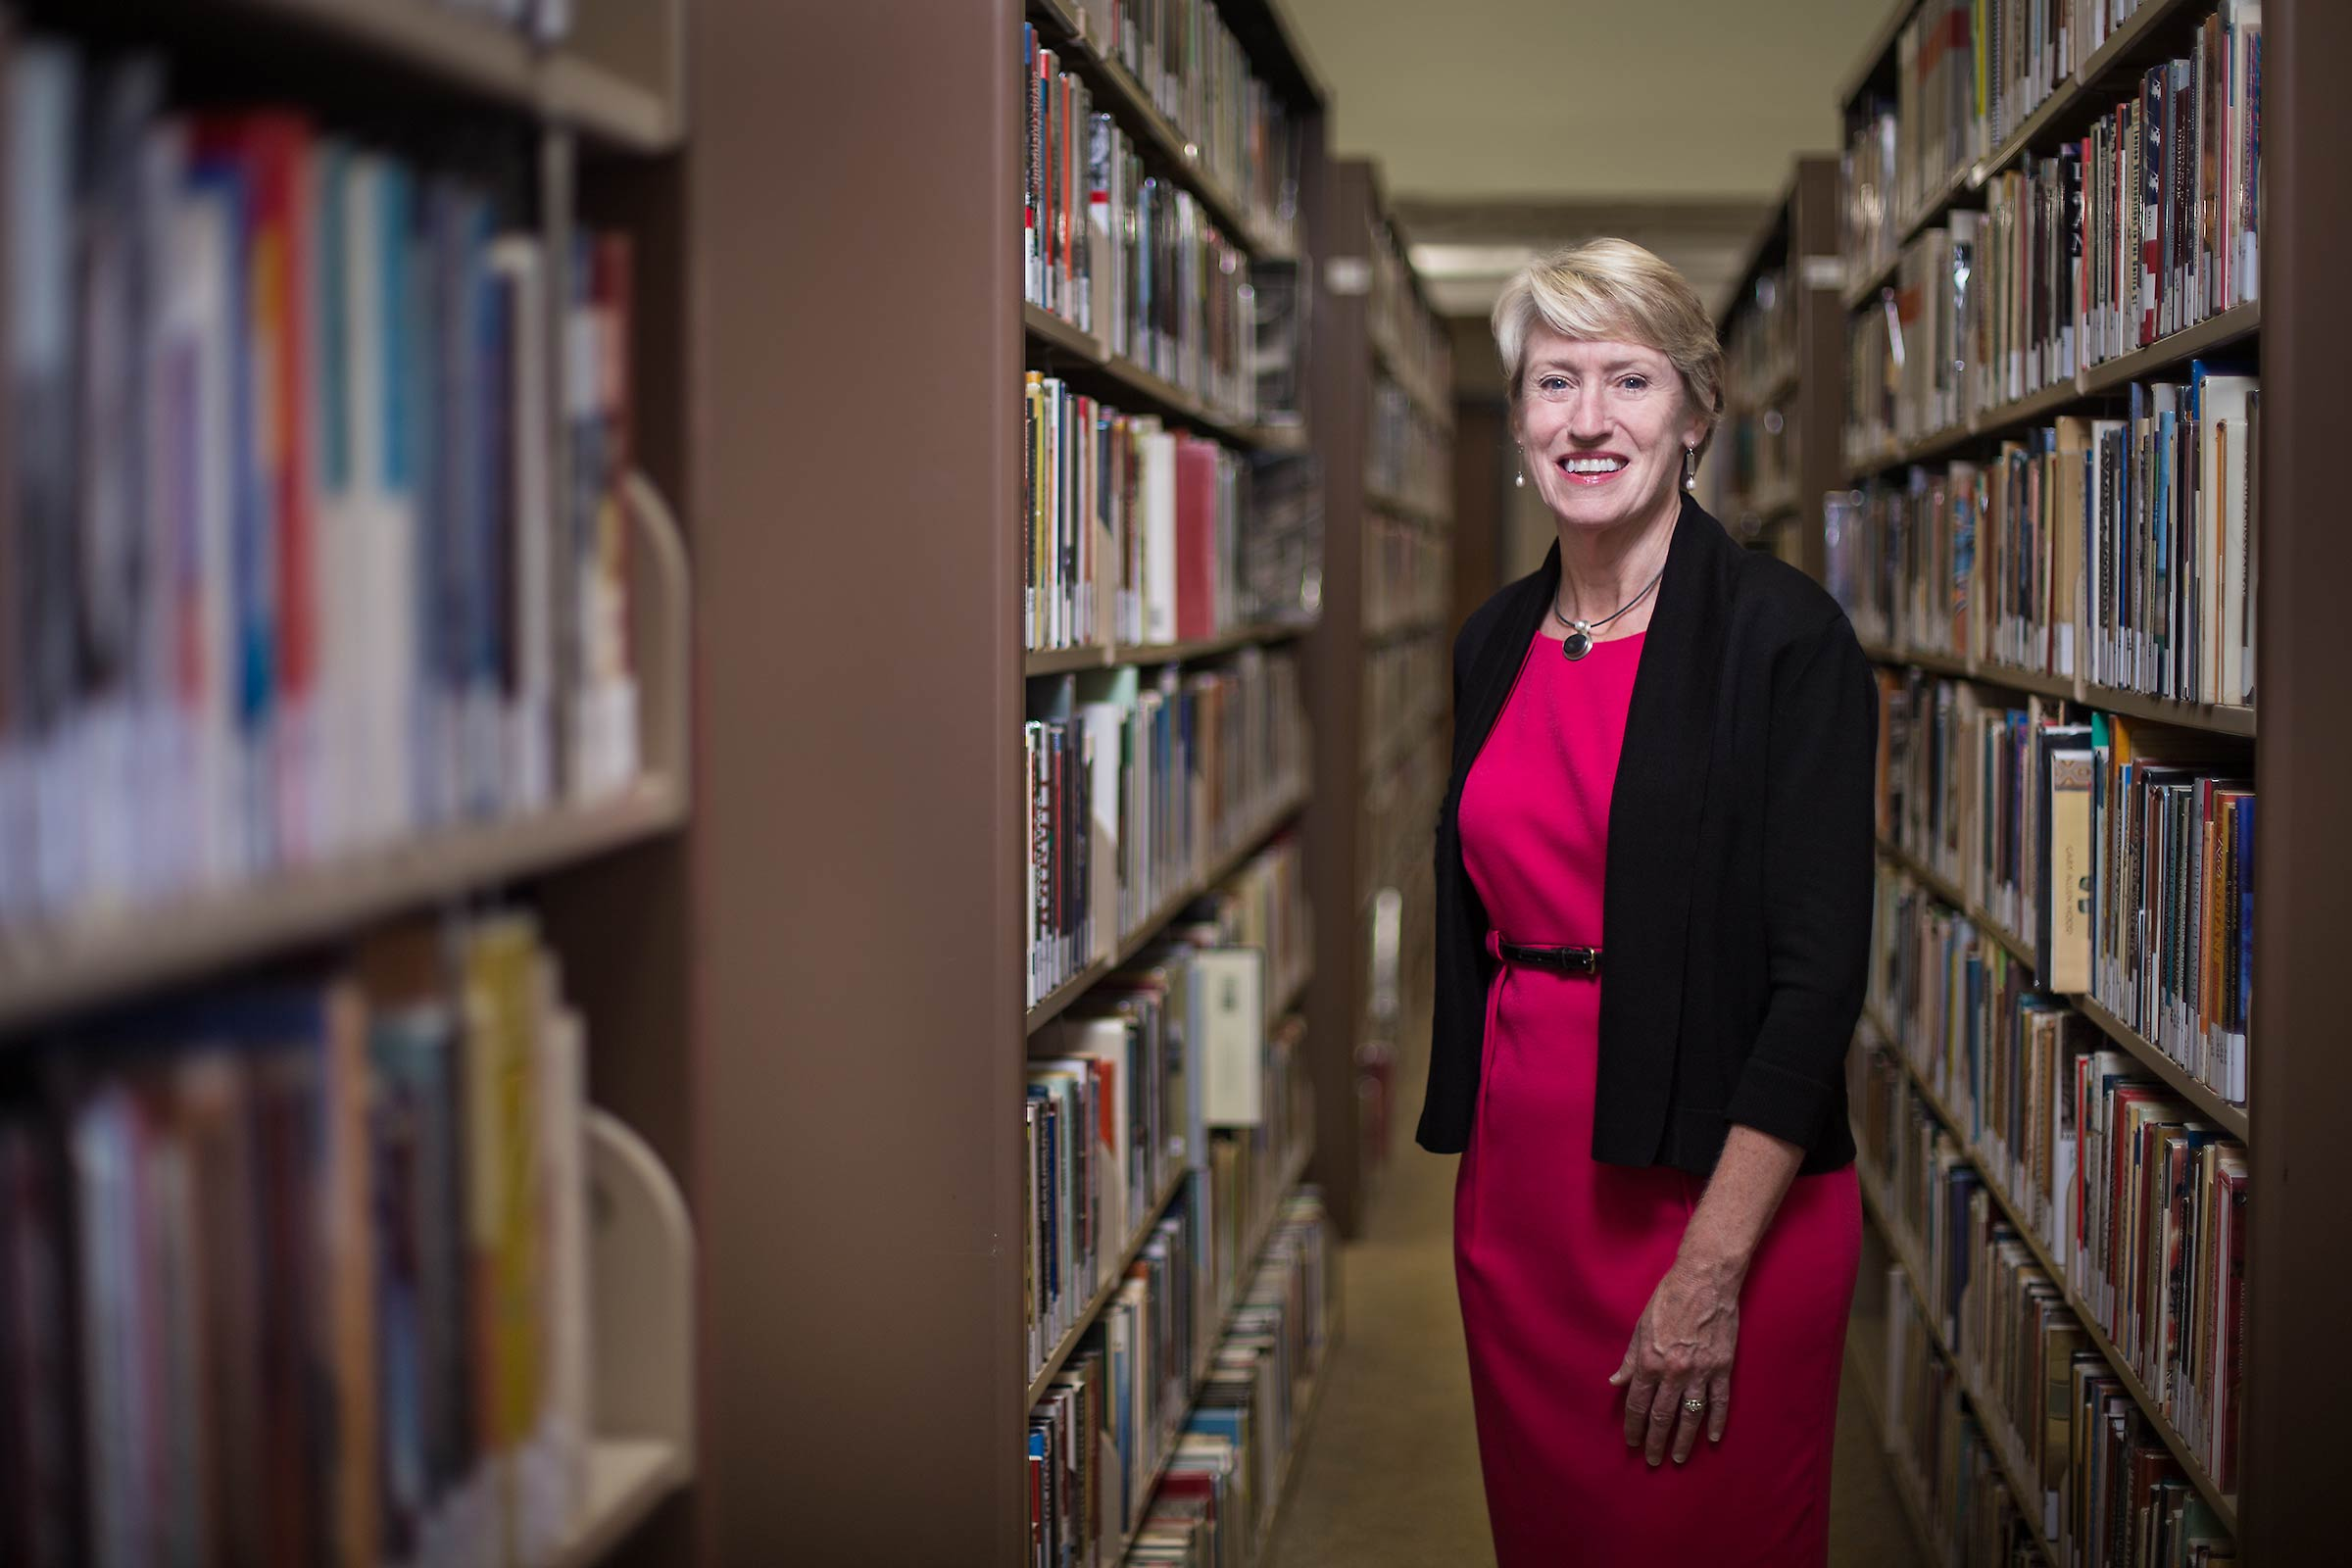 A female  president of a New England College posed on campus amid rows of books